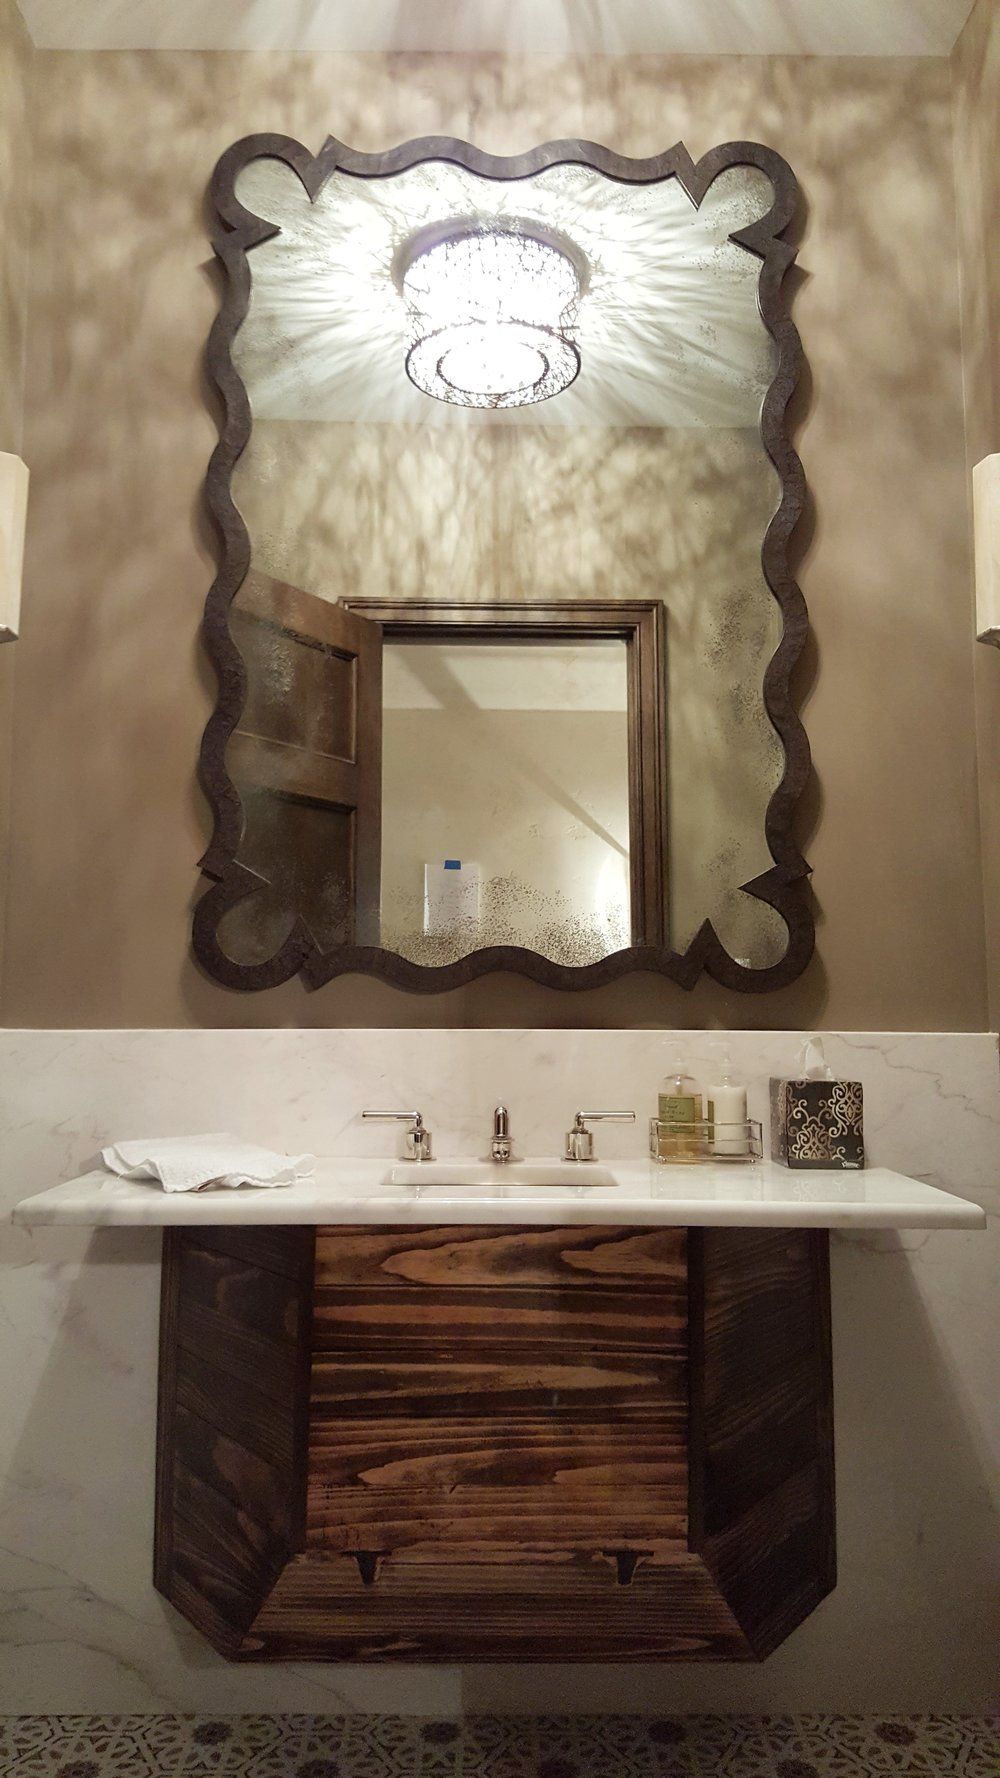 Bathroom vanity in marble and barnwood (2).jpg